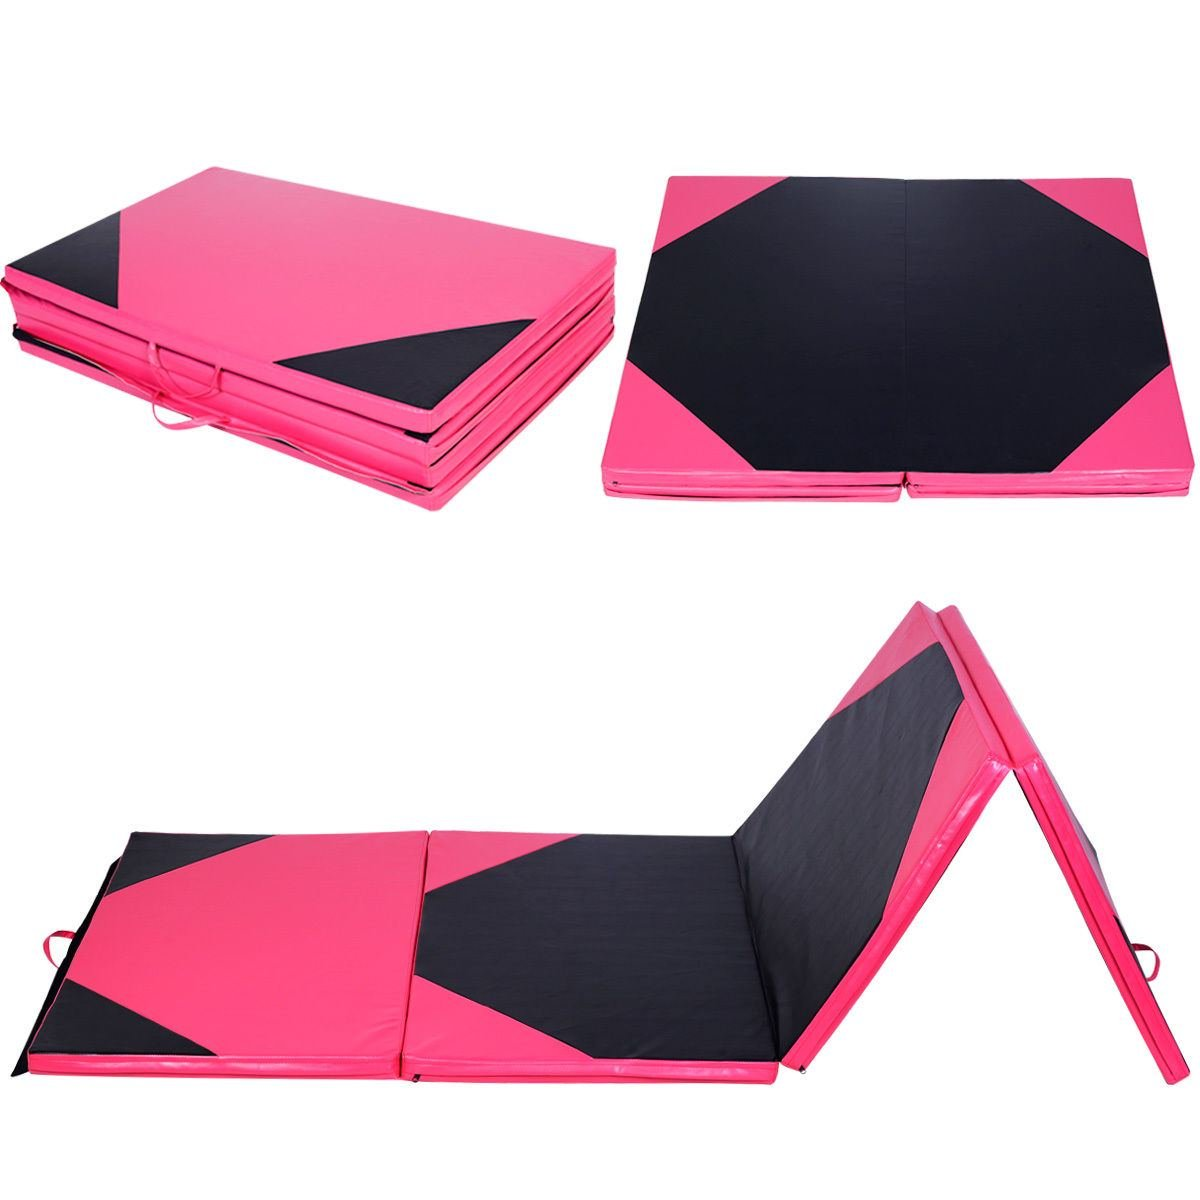 Thick Folding Panel Gymnastics Mat 4'x10'x2'' Gym Fitness Exercise Pink & Black by Unknown